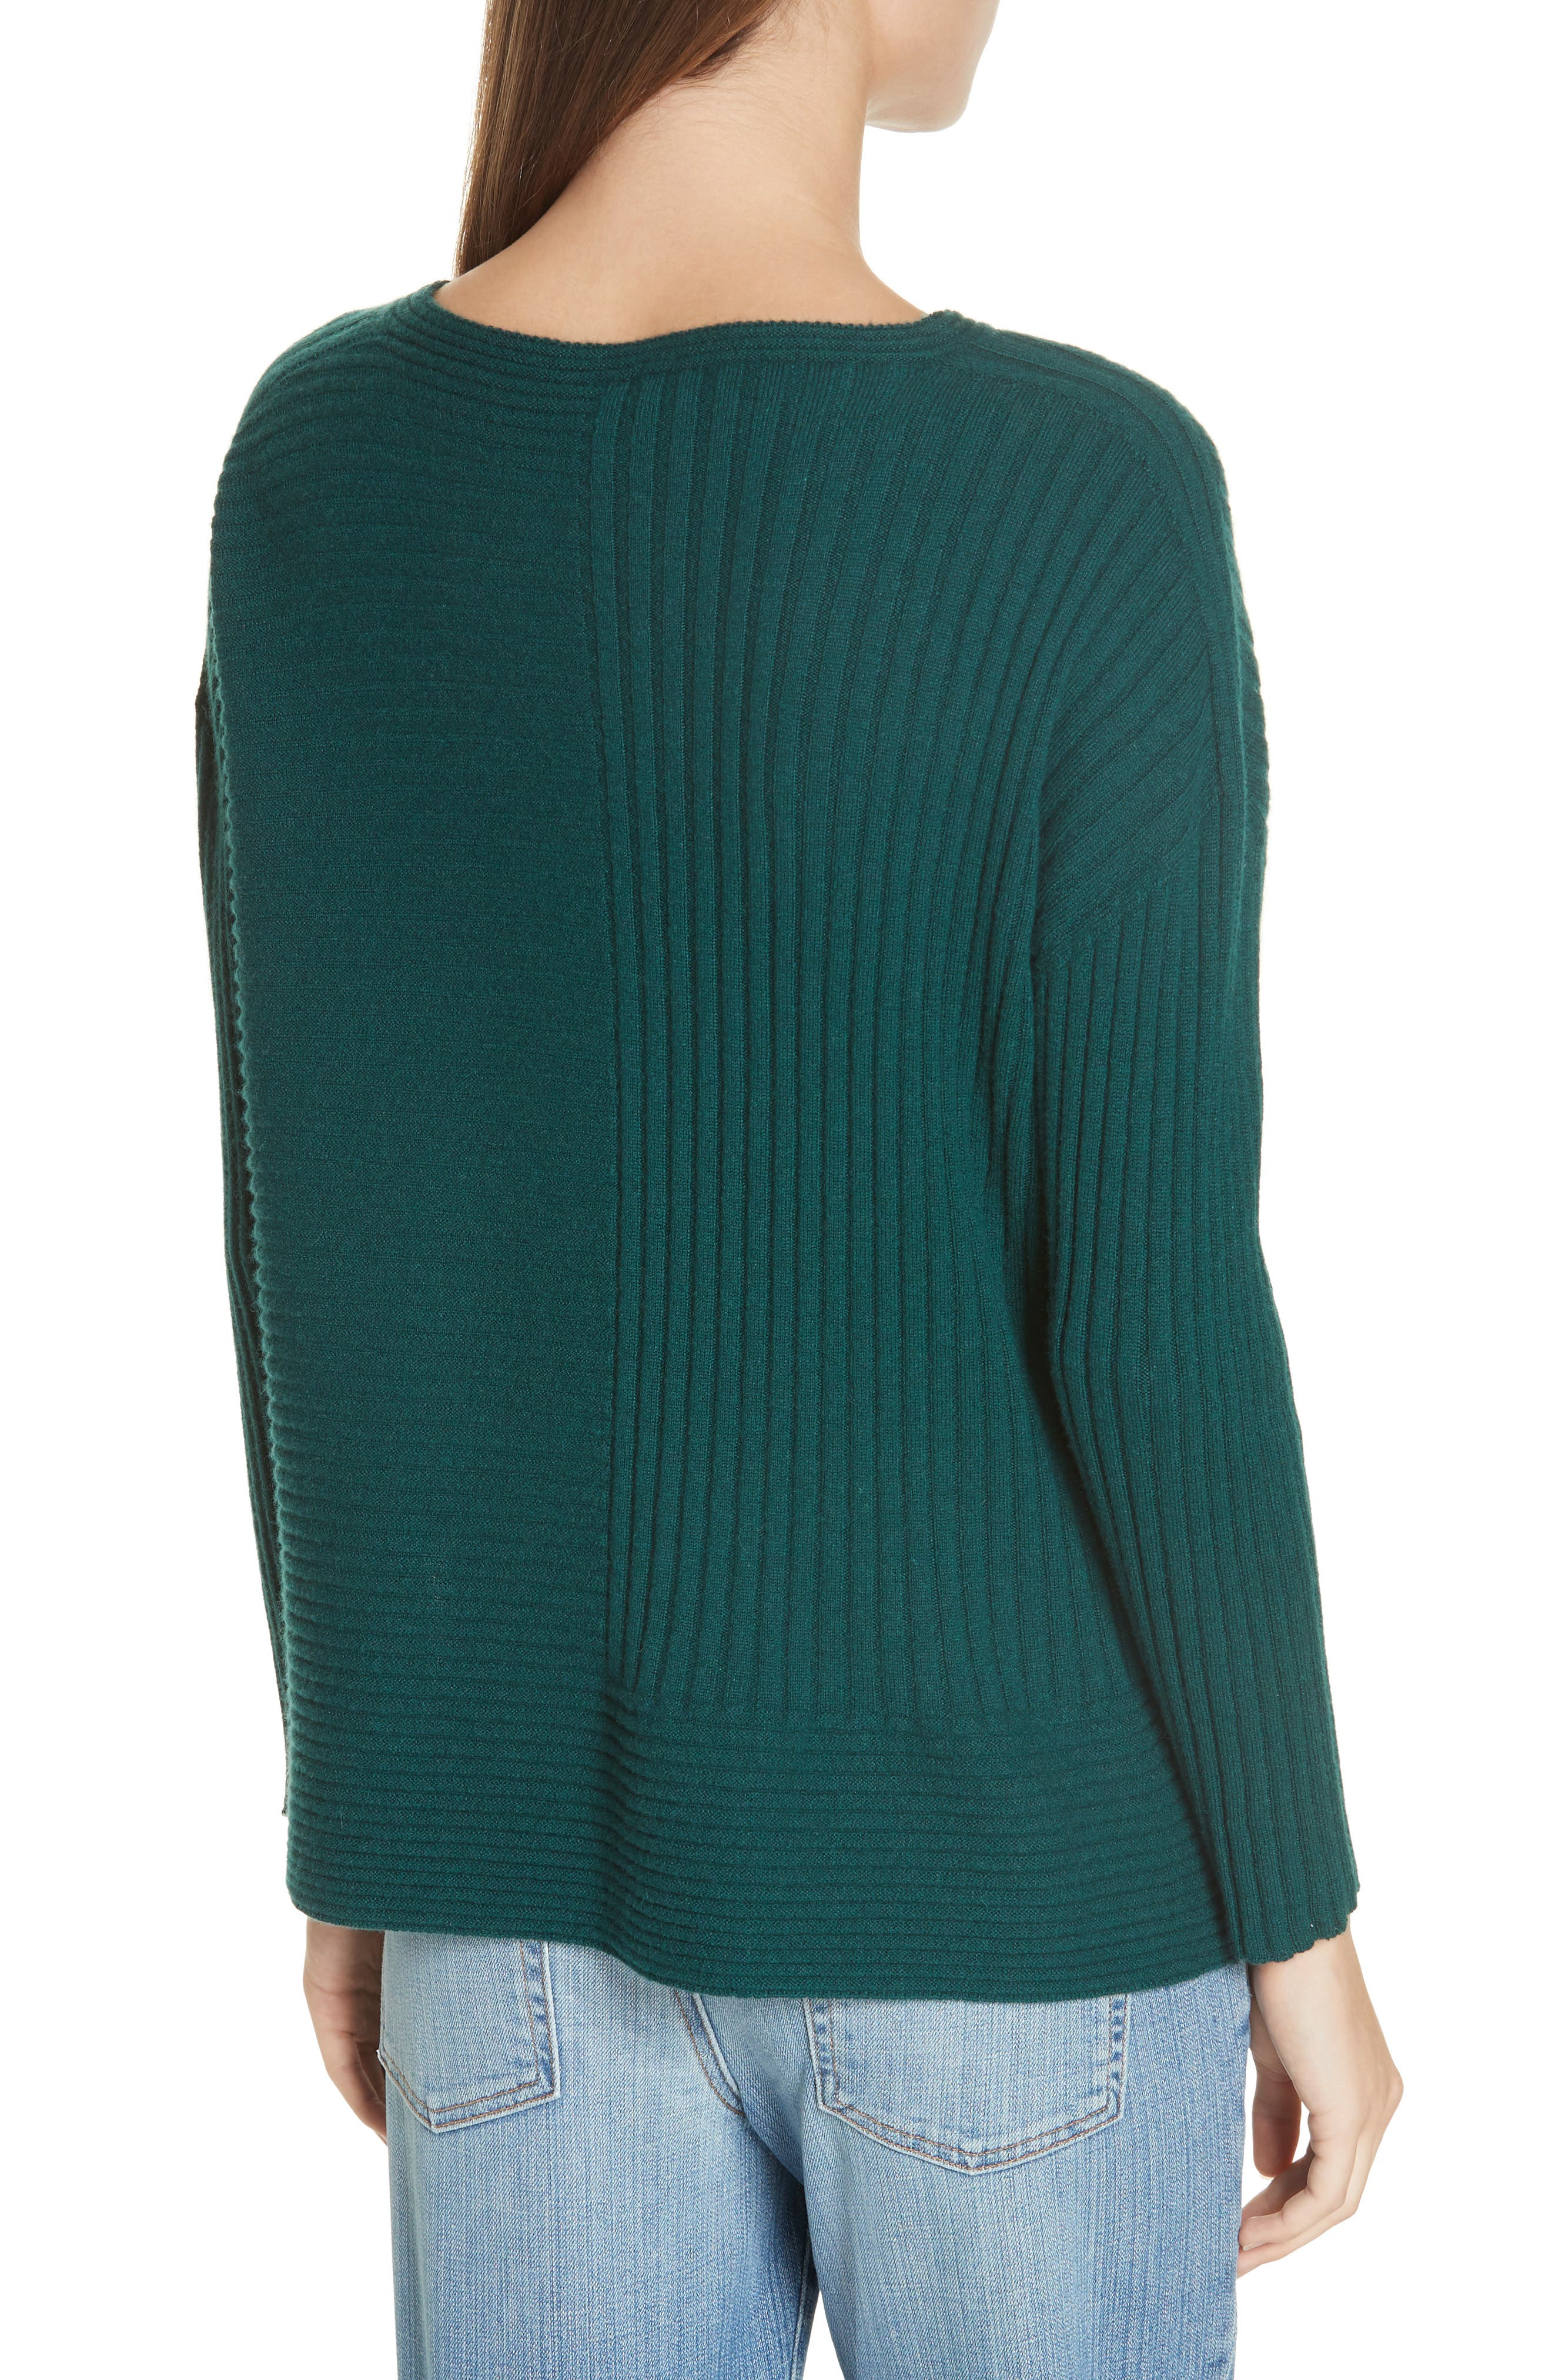 Ribbed Cashmere Sweater,                             Alternate thumbnail 2, color,                             303